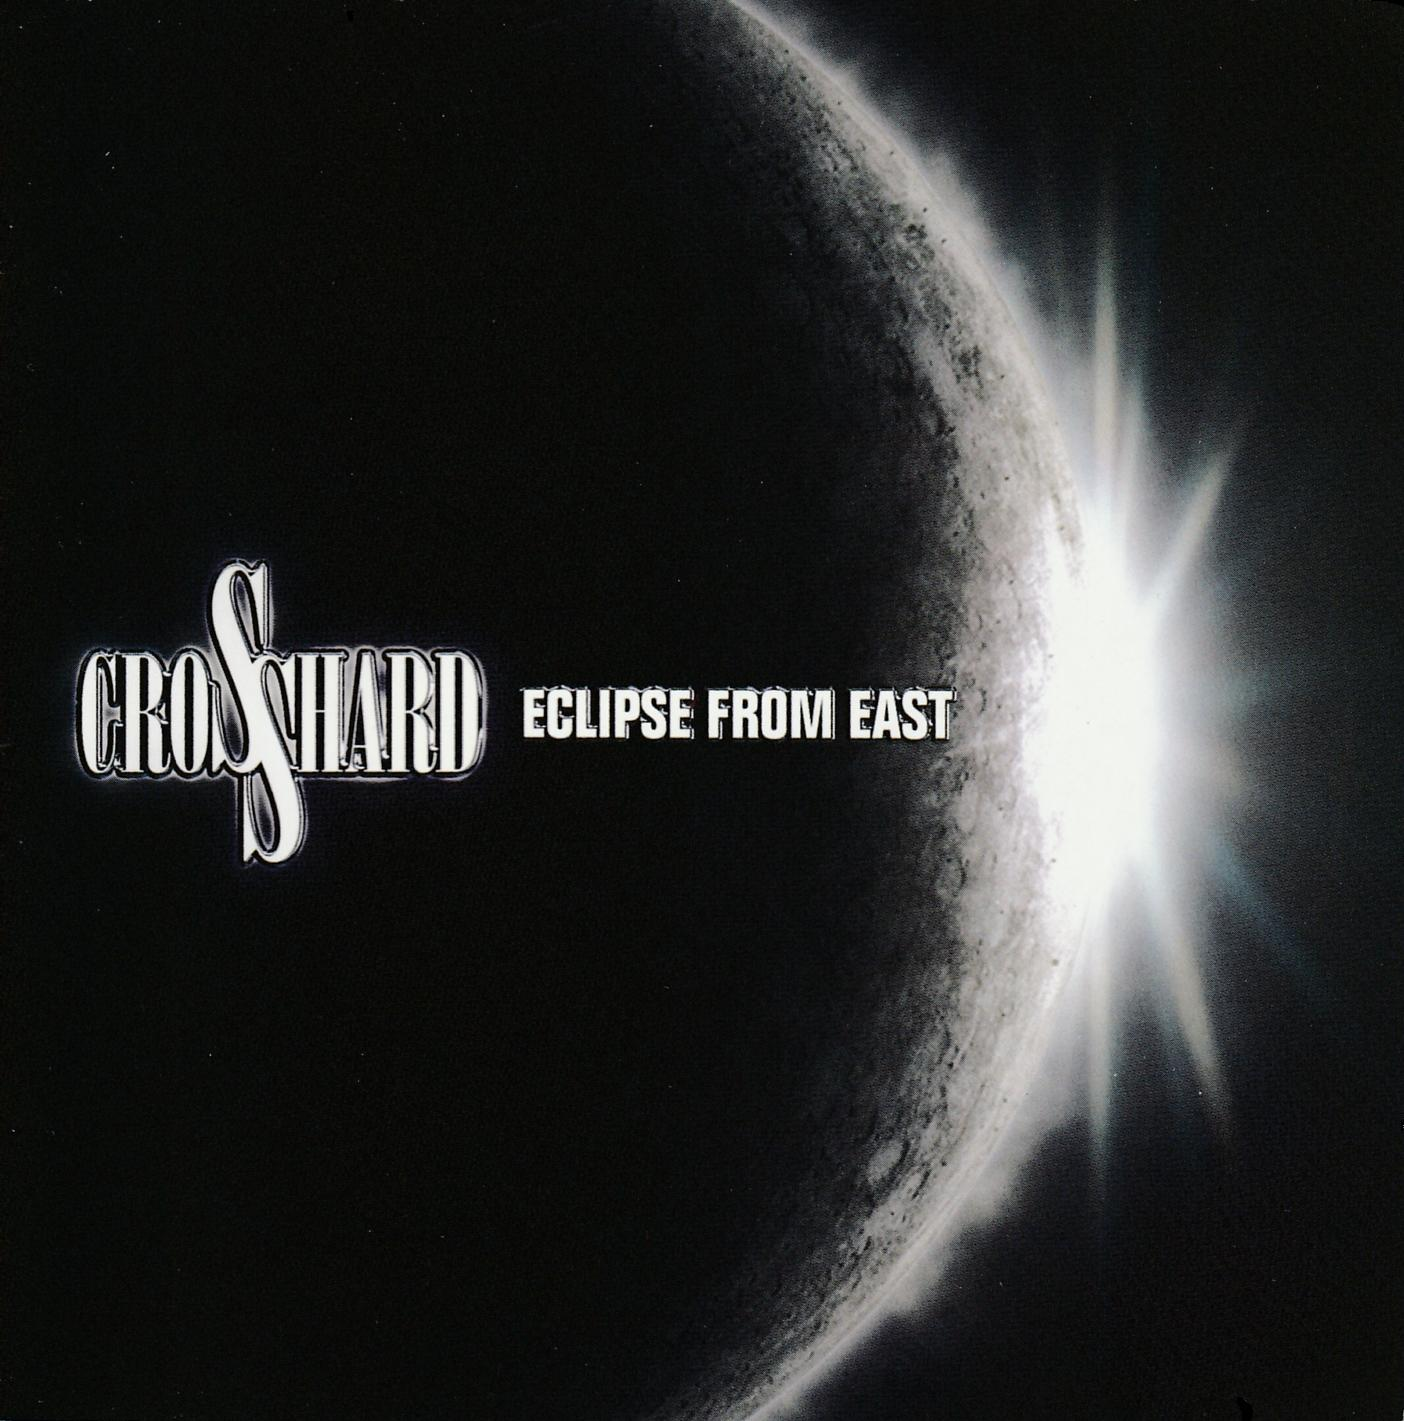 Cross Hard - Eclipse from East